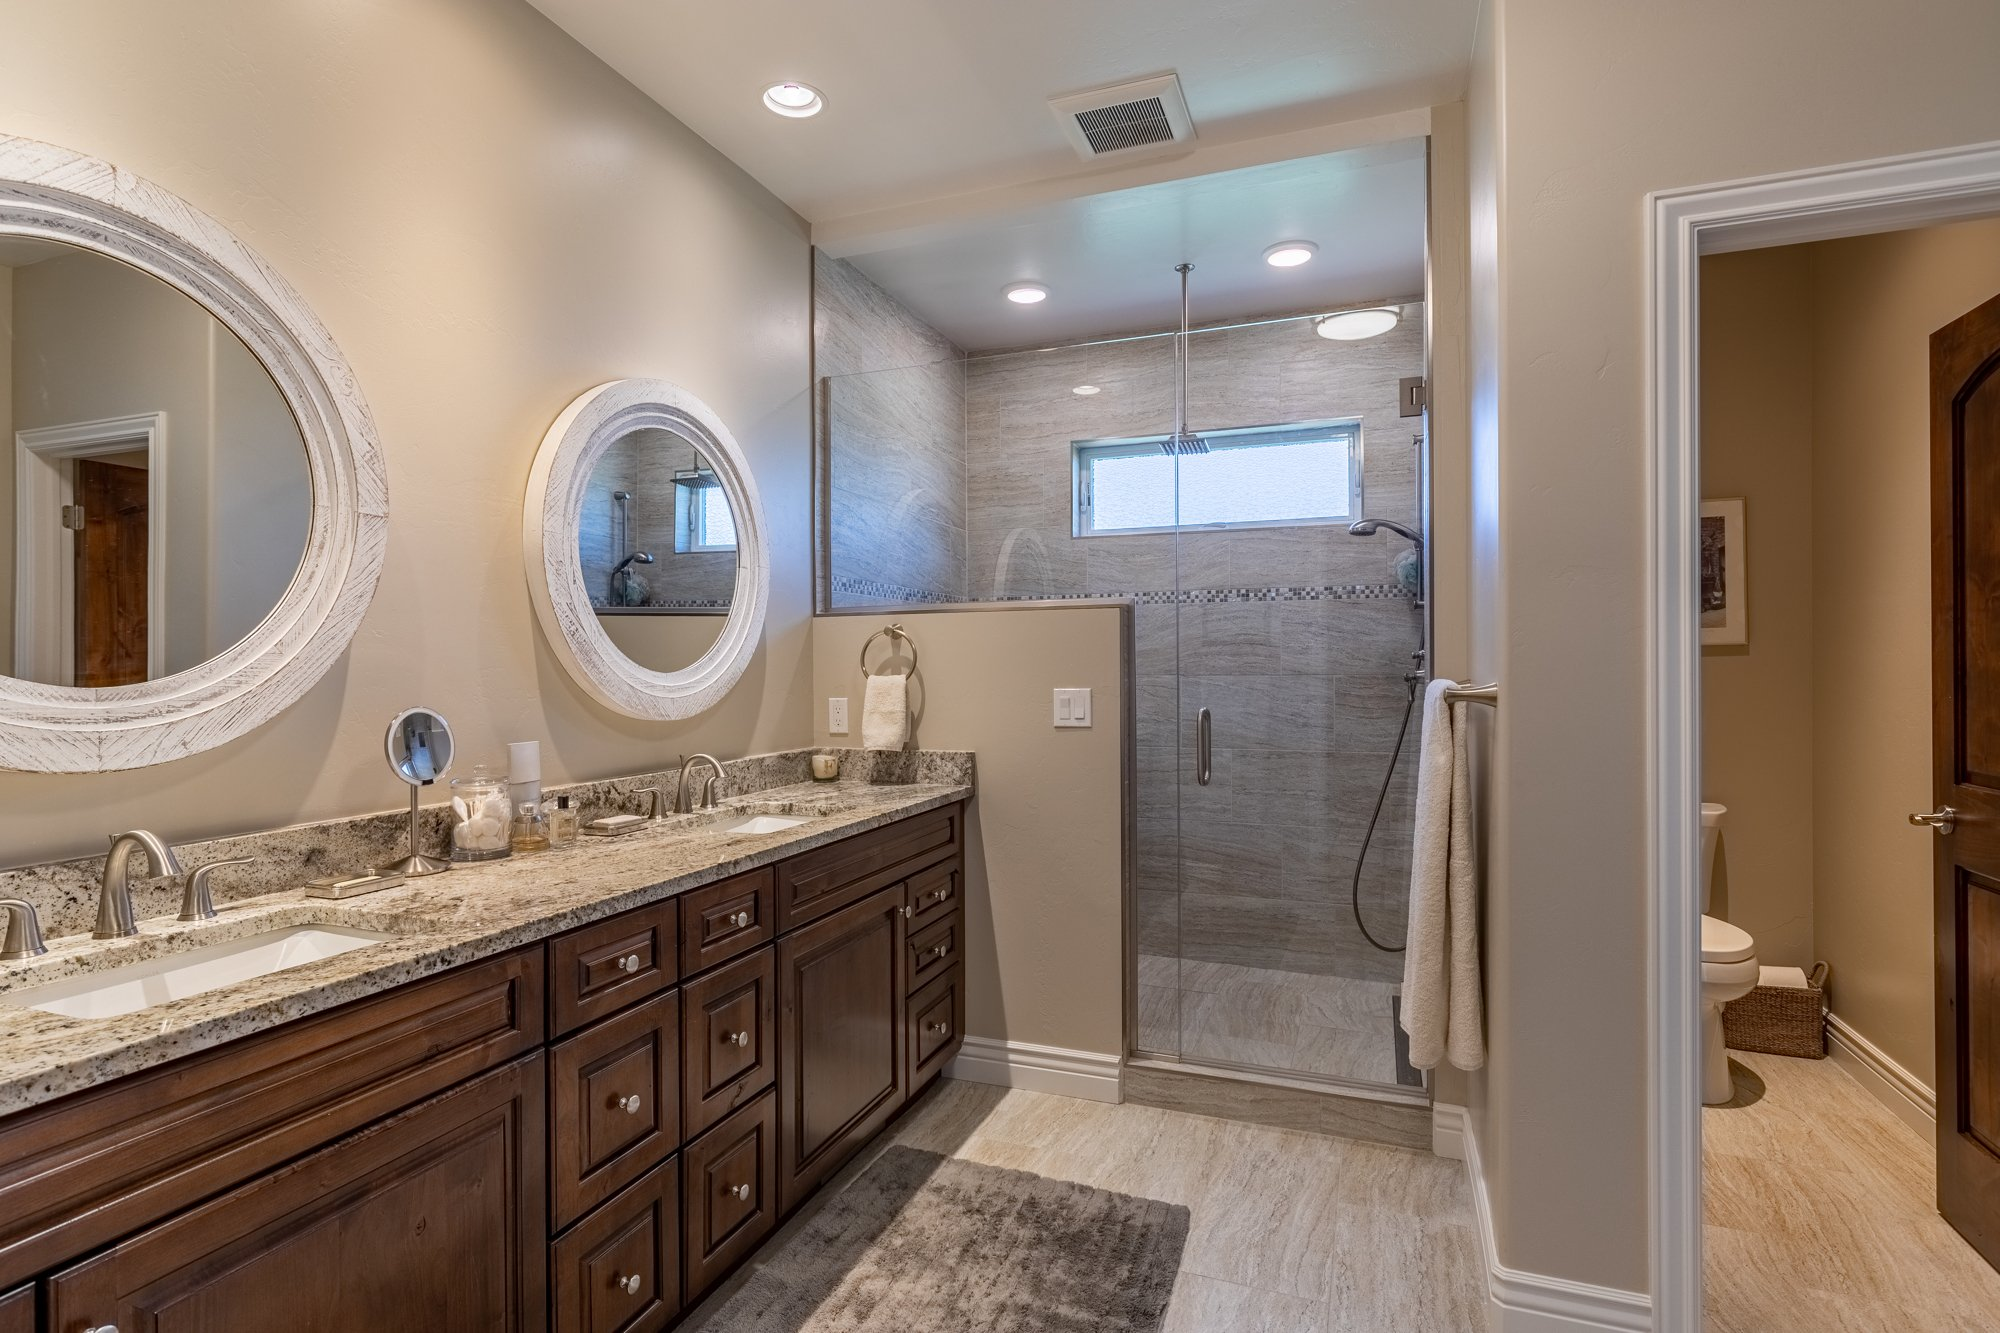 Master Bathroom with Tiled Shower - 2927 Sleeping Bear Rd Montrose, CO 81401 - Atha Team Real Estate